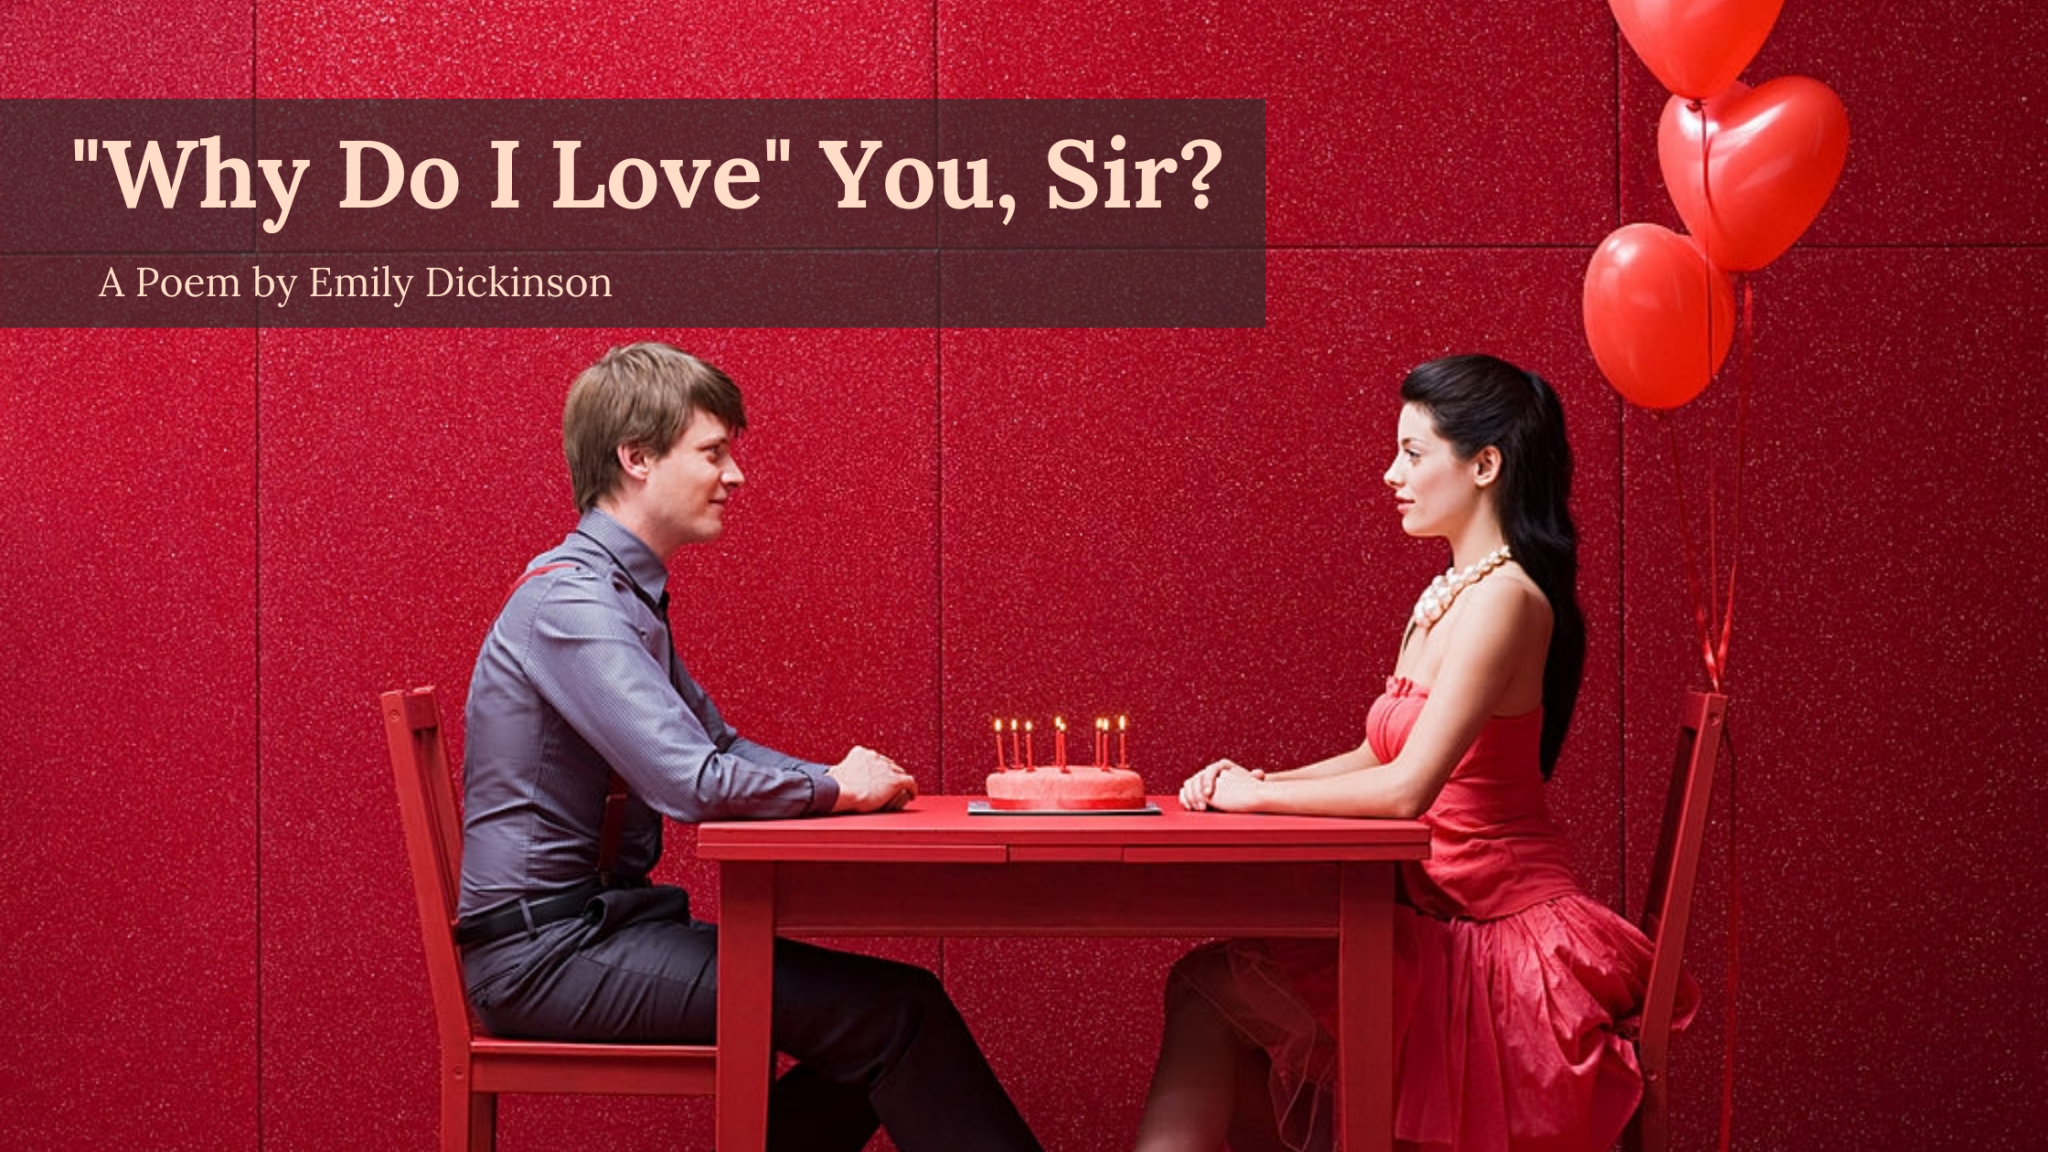 Why do I love you sir by emily dickinson